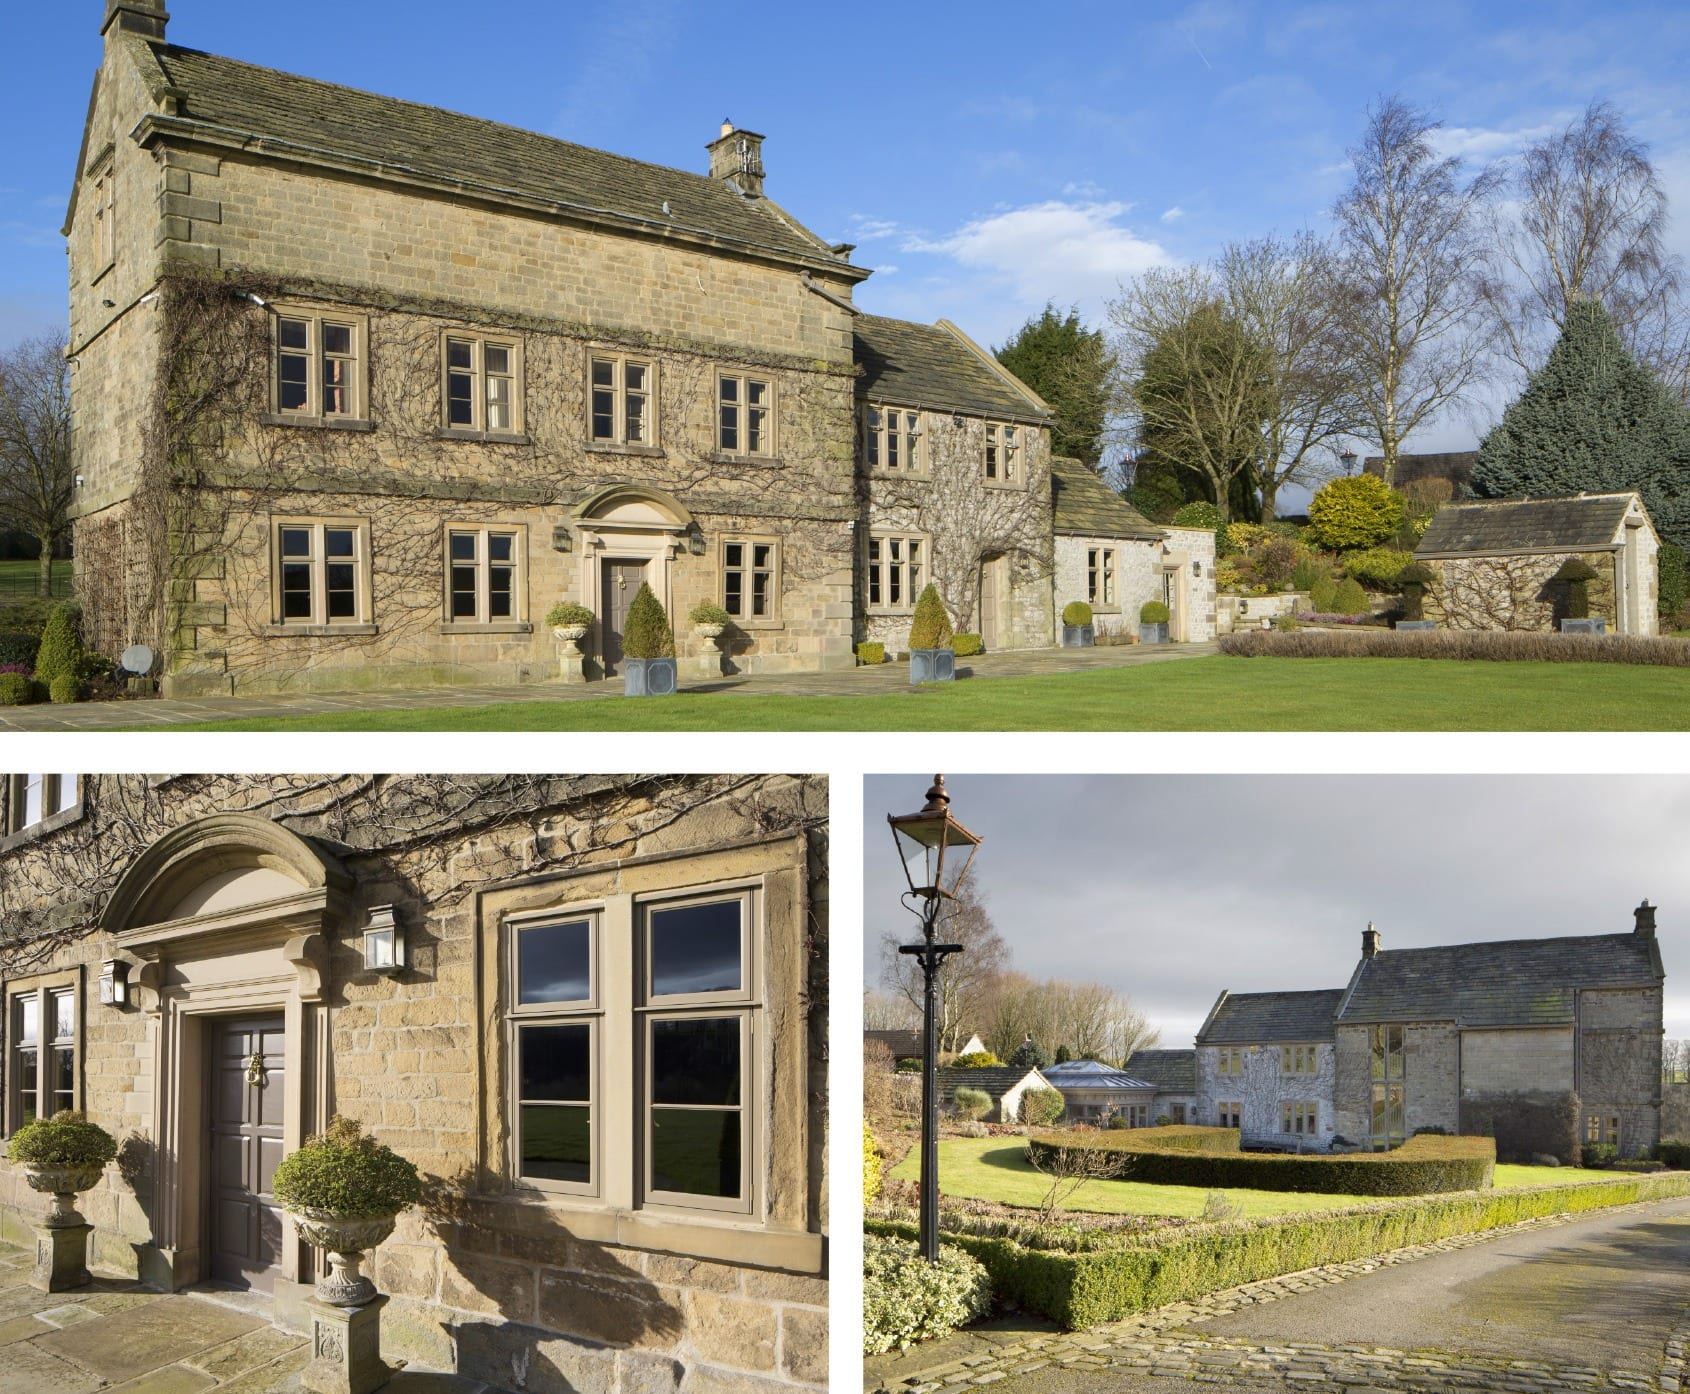 Gallery shots of Olde Longmoor Hall in Derbyshire after Gowercroft fitted new timber windows and doors